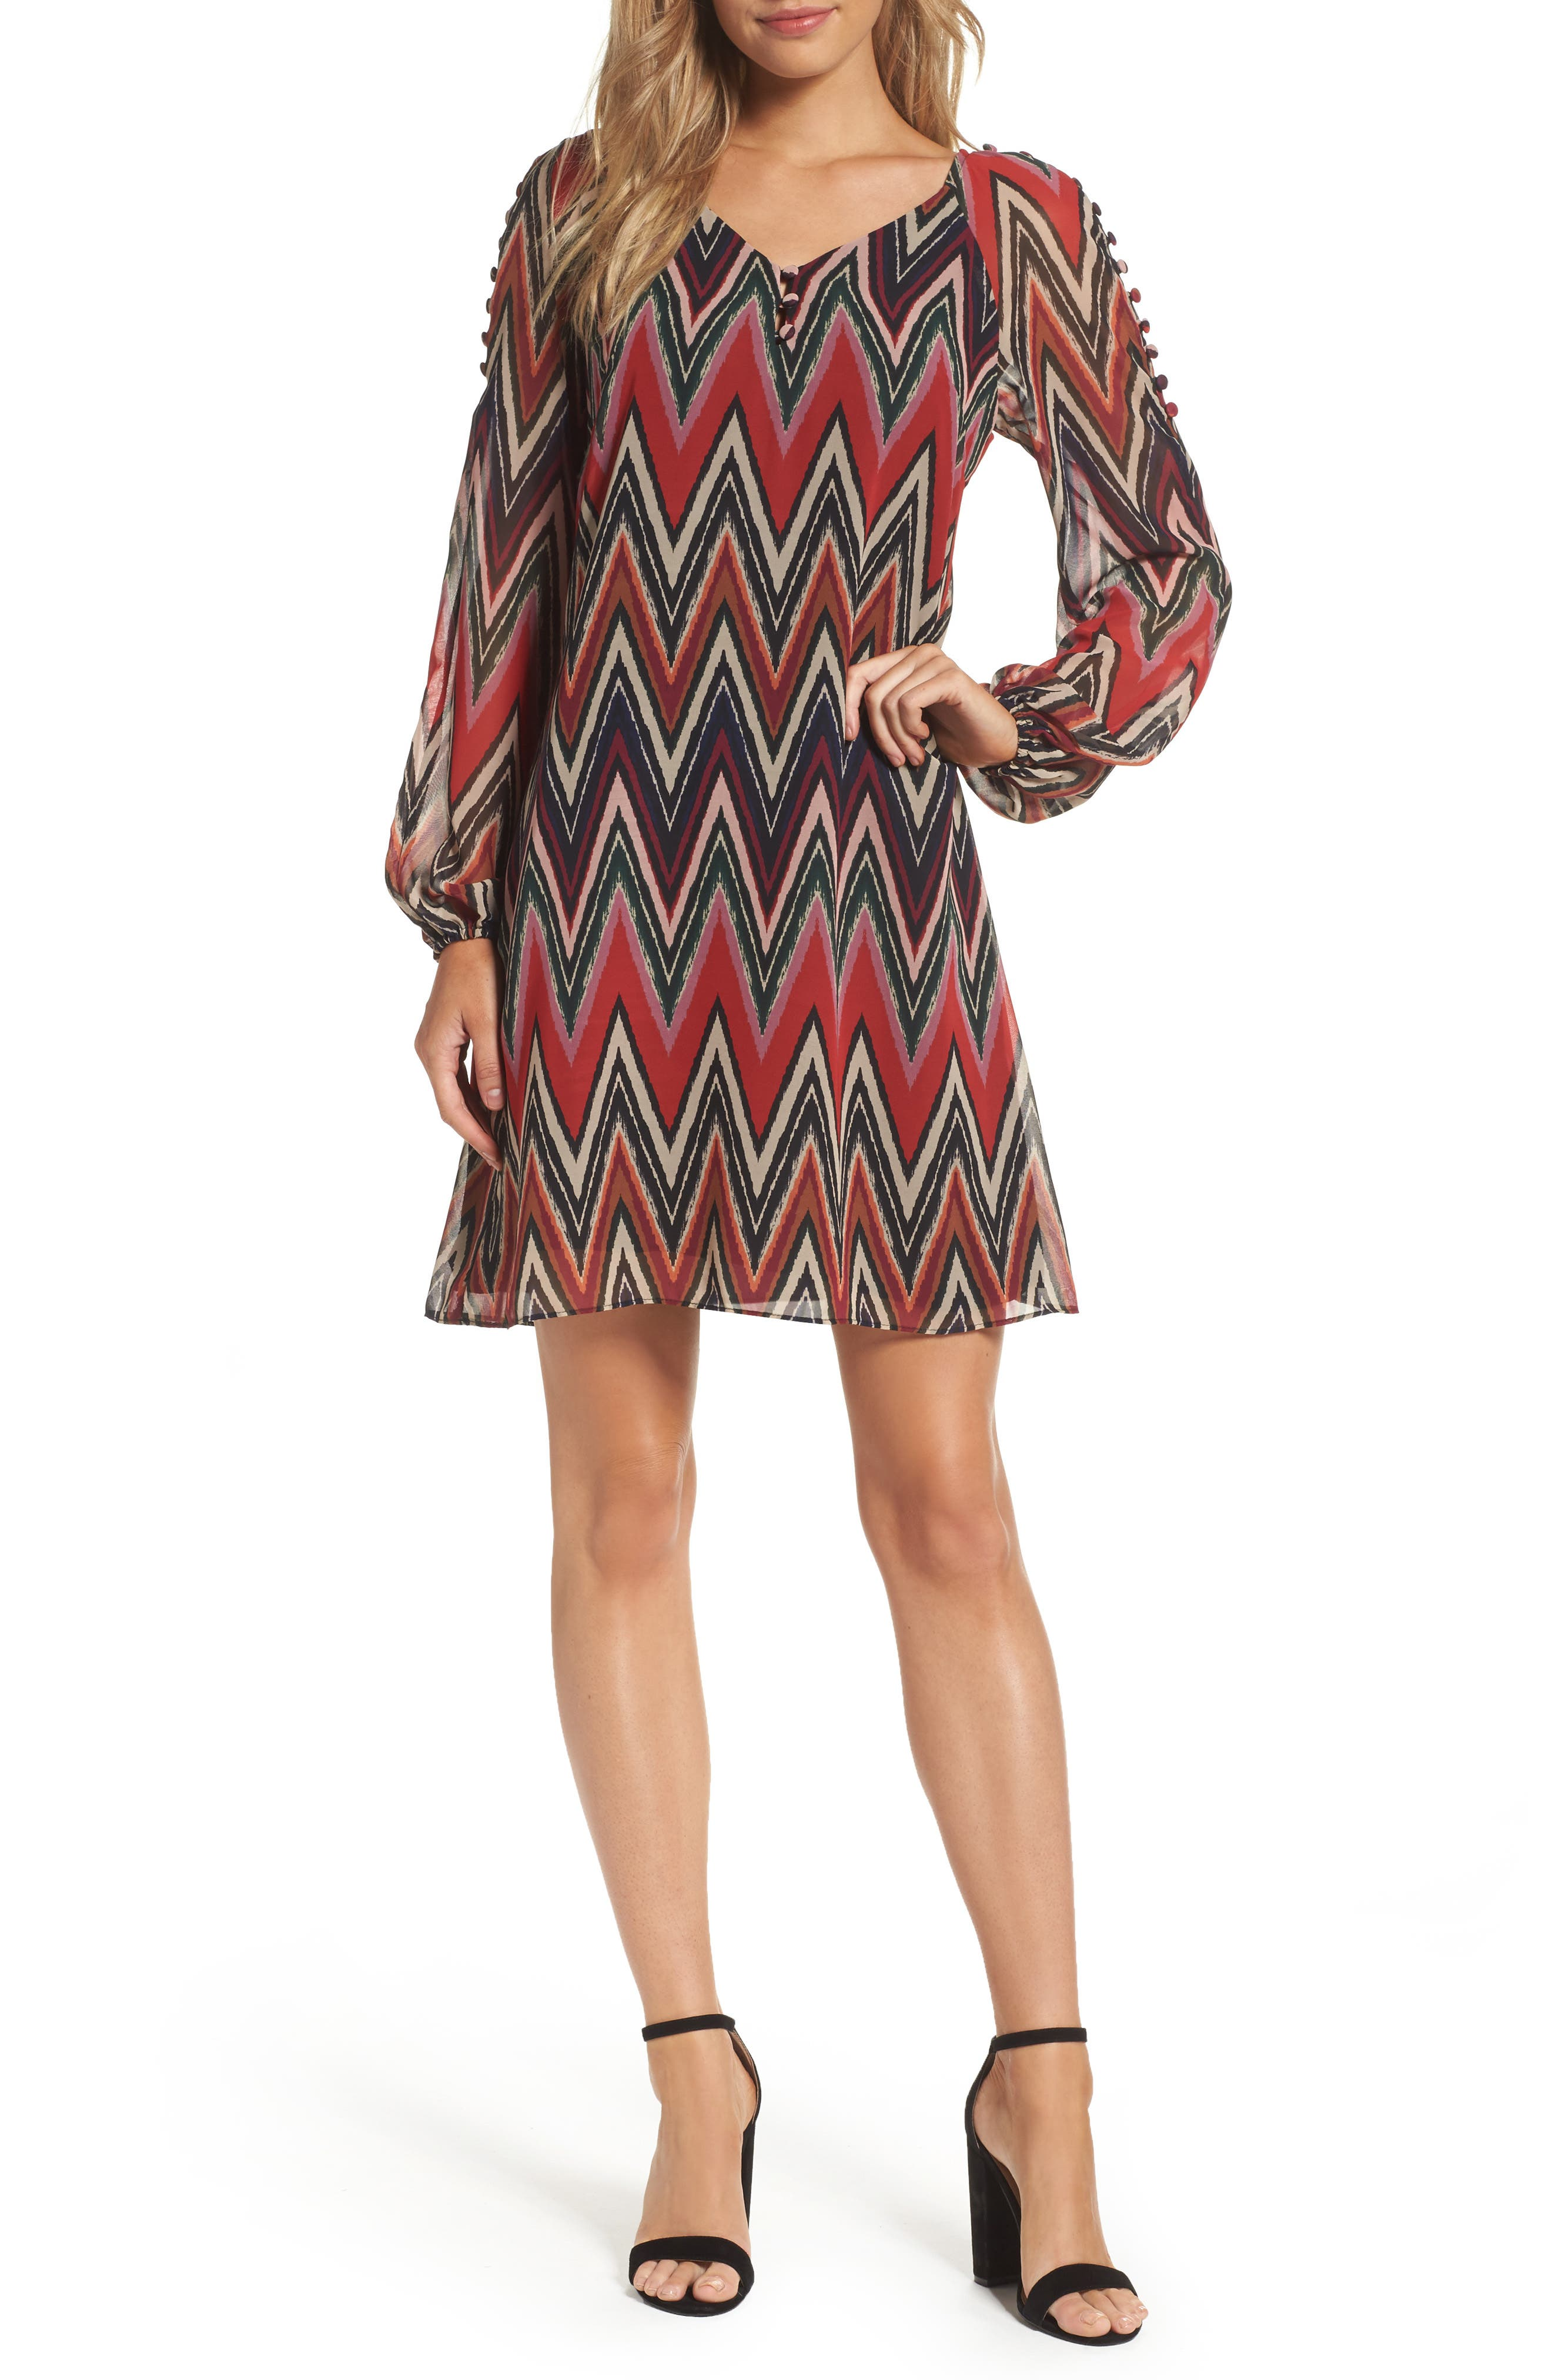 Taylor Dresses Chevron Swing Dress